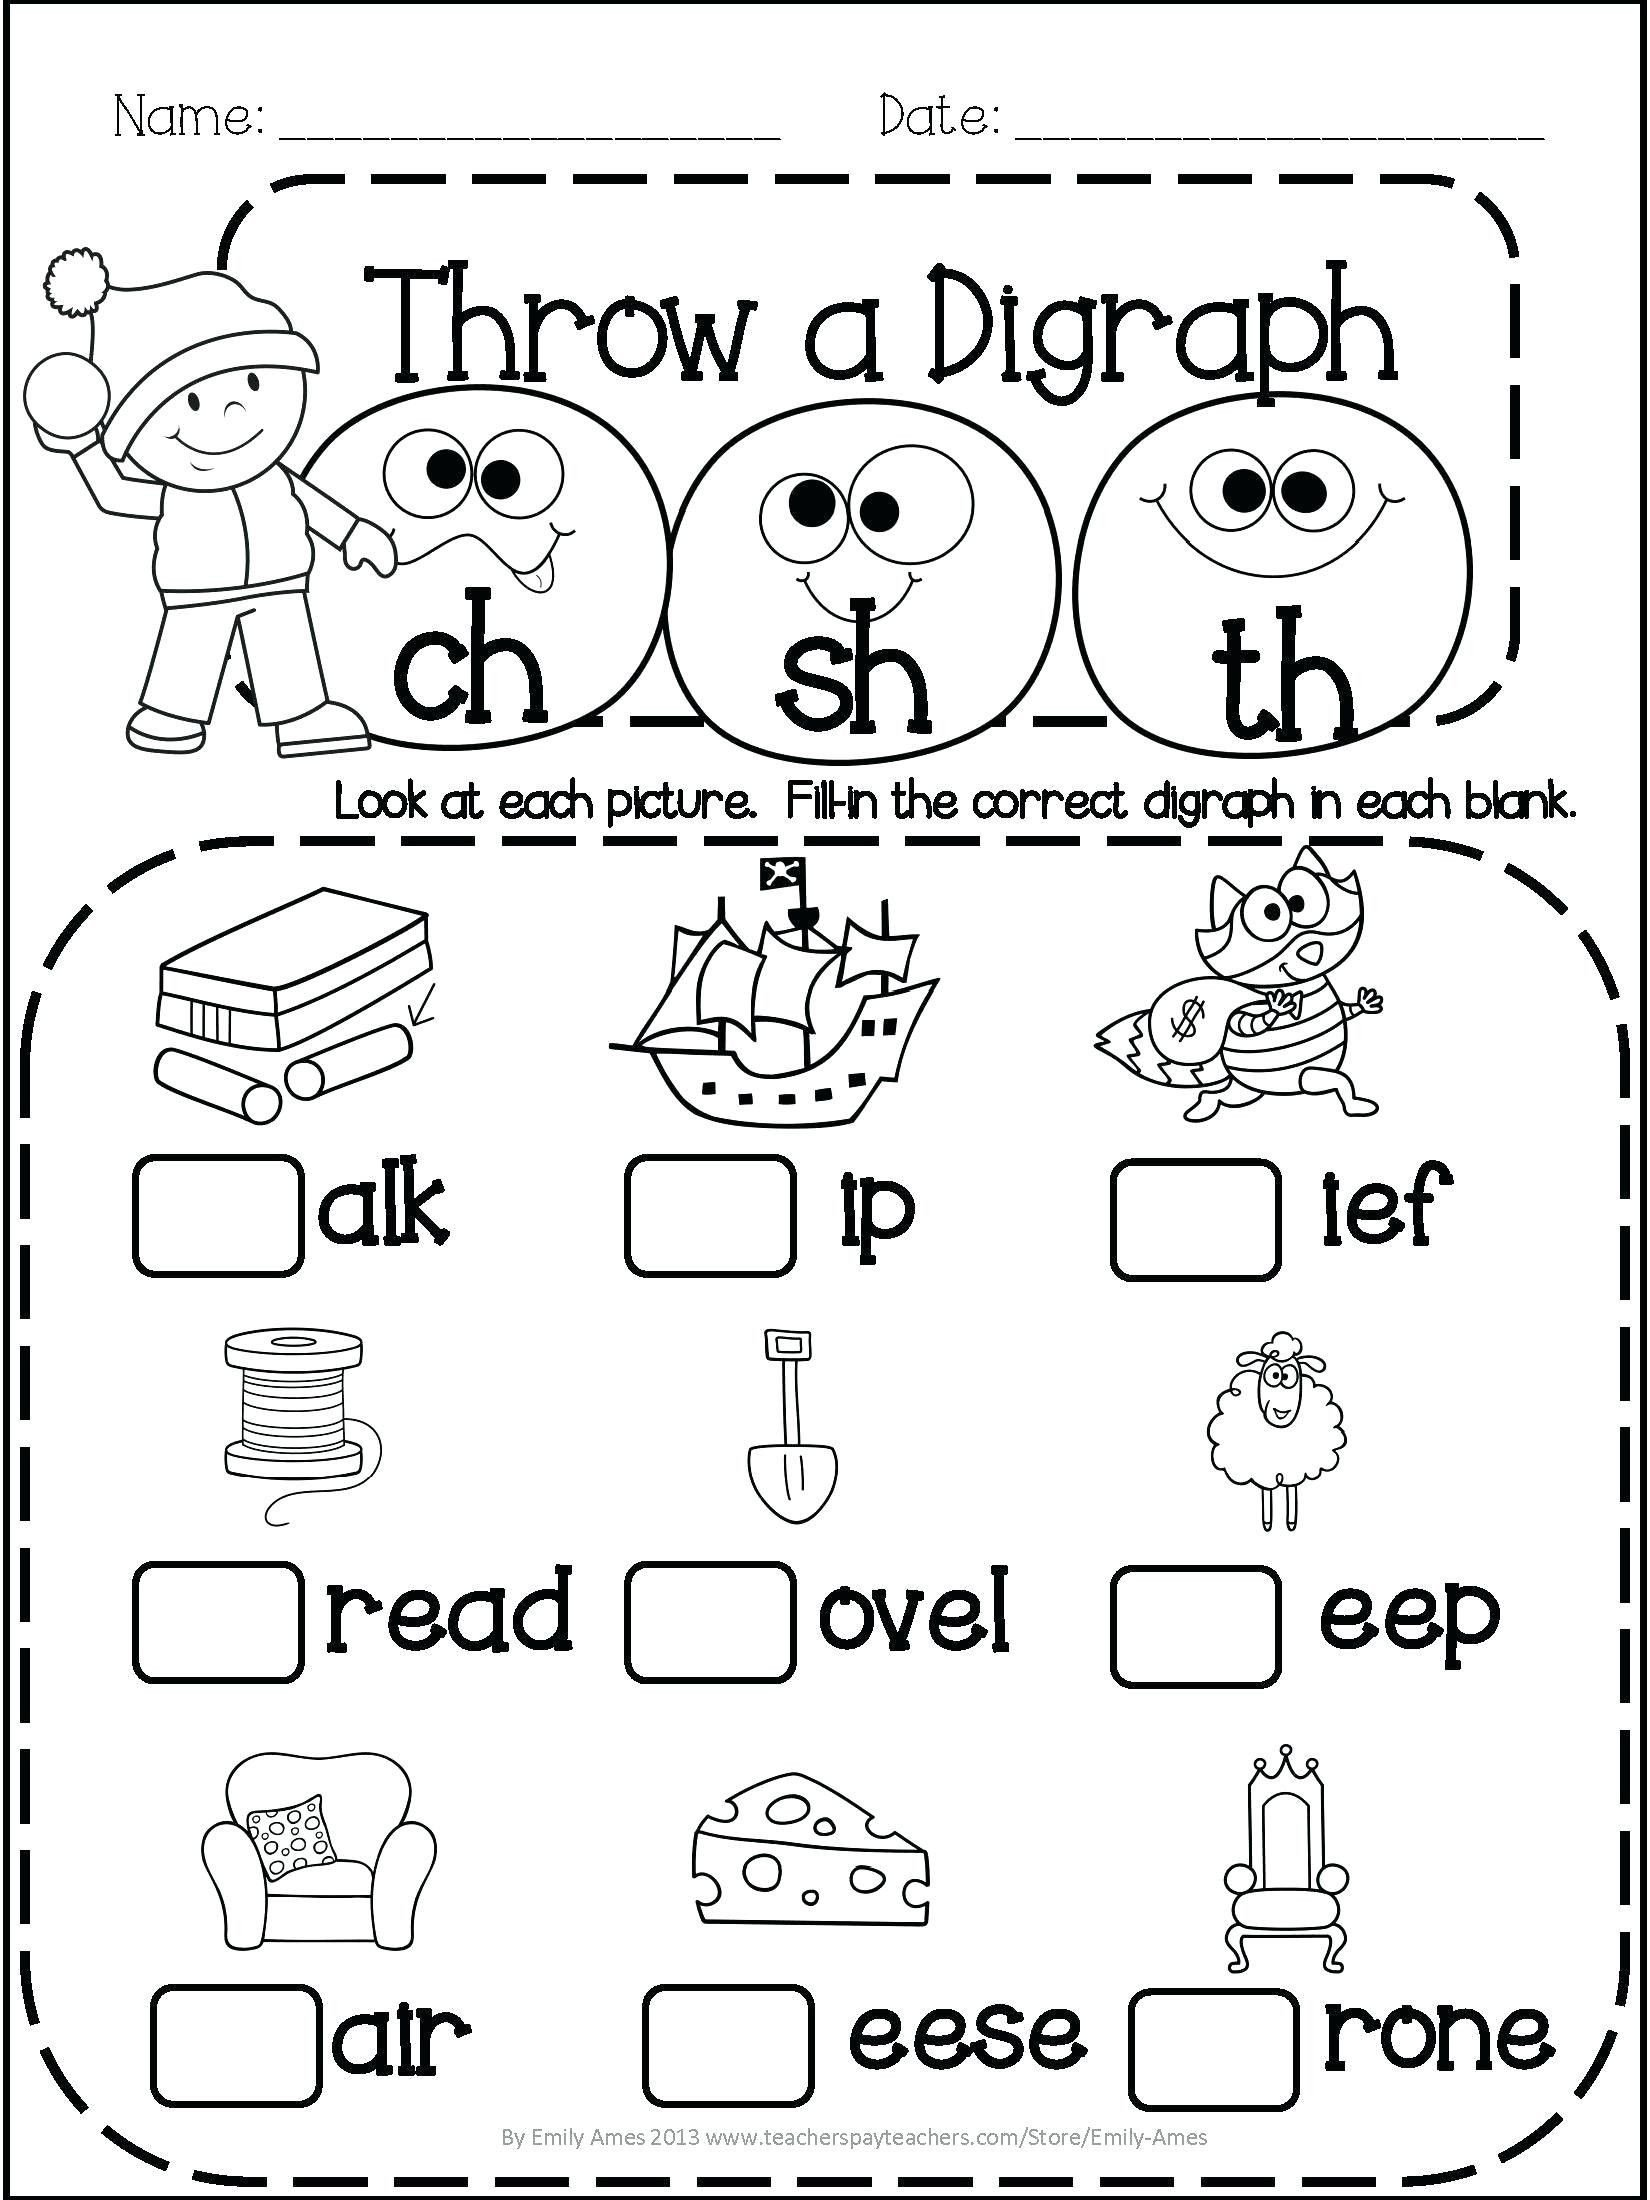 free math worksheets third grade addition word problems activities for fbla business practice test algebra year fun christmas the mat games educational kindergarten 6th graphing